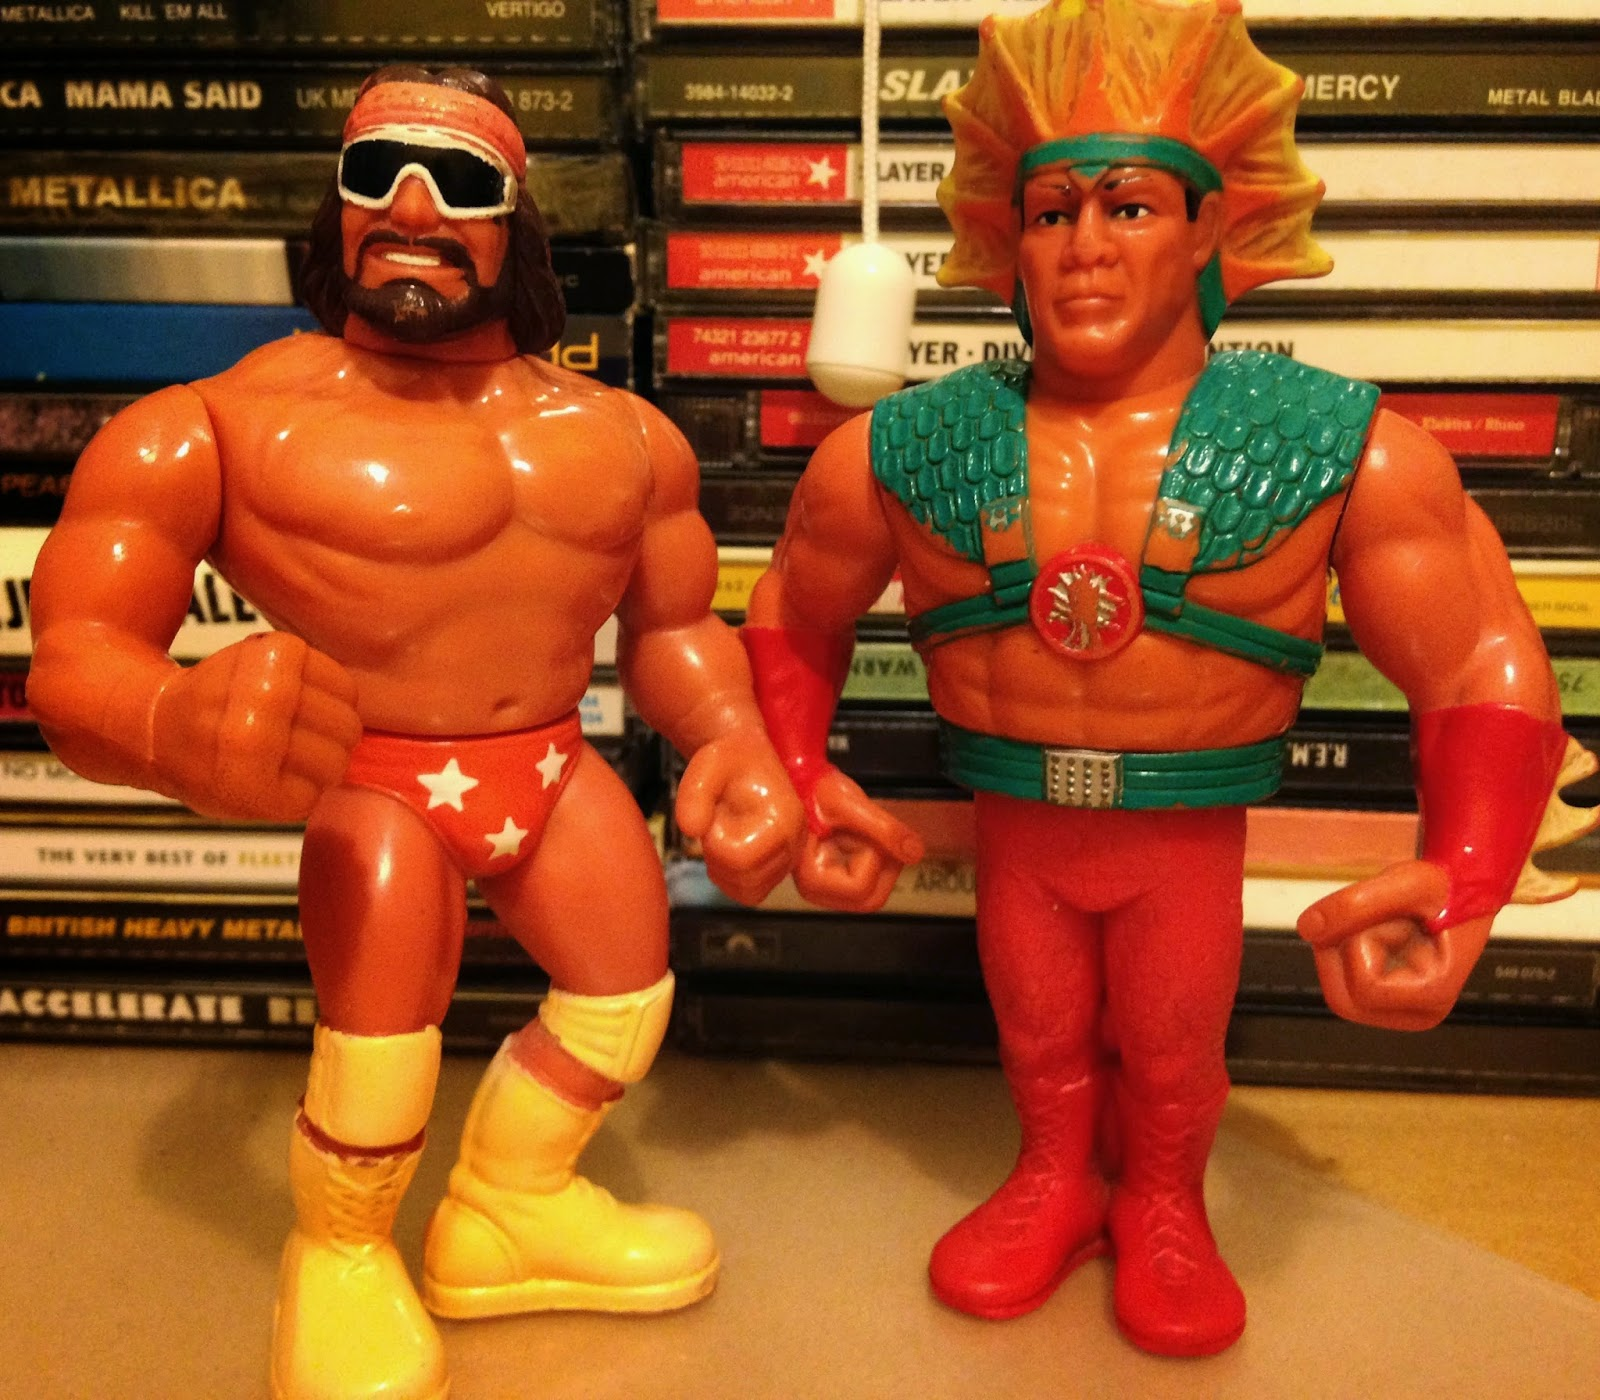 WWF / WWE - Hasbro Wrestling Figures - Macho Man Randy Savage vs. Ricky 'The Dragon' Steamboat - Wrestlemania 3